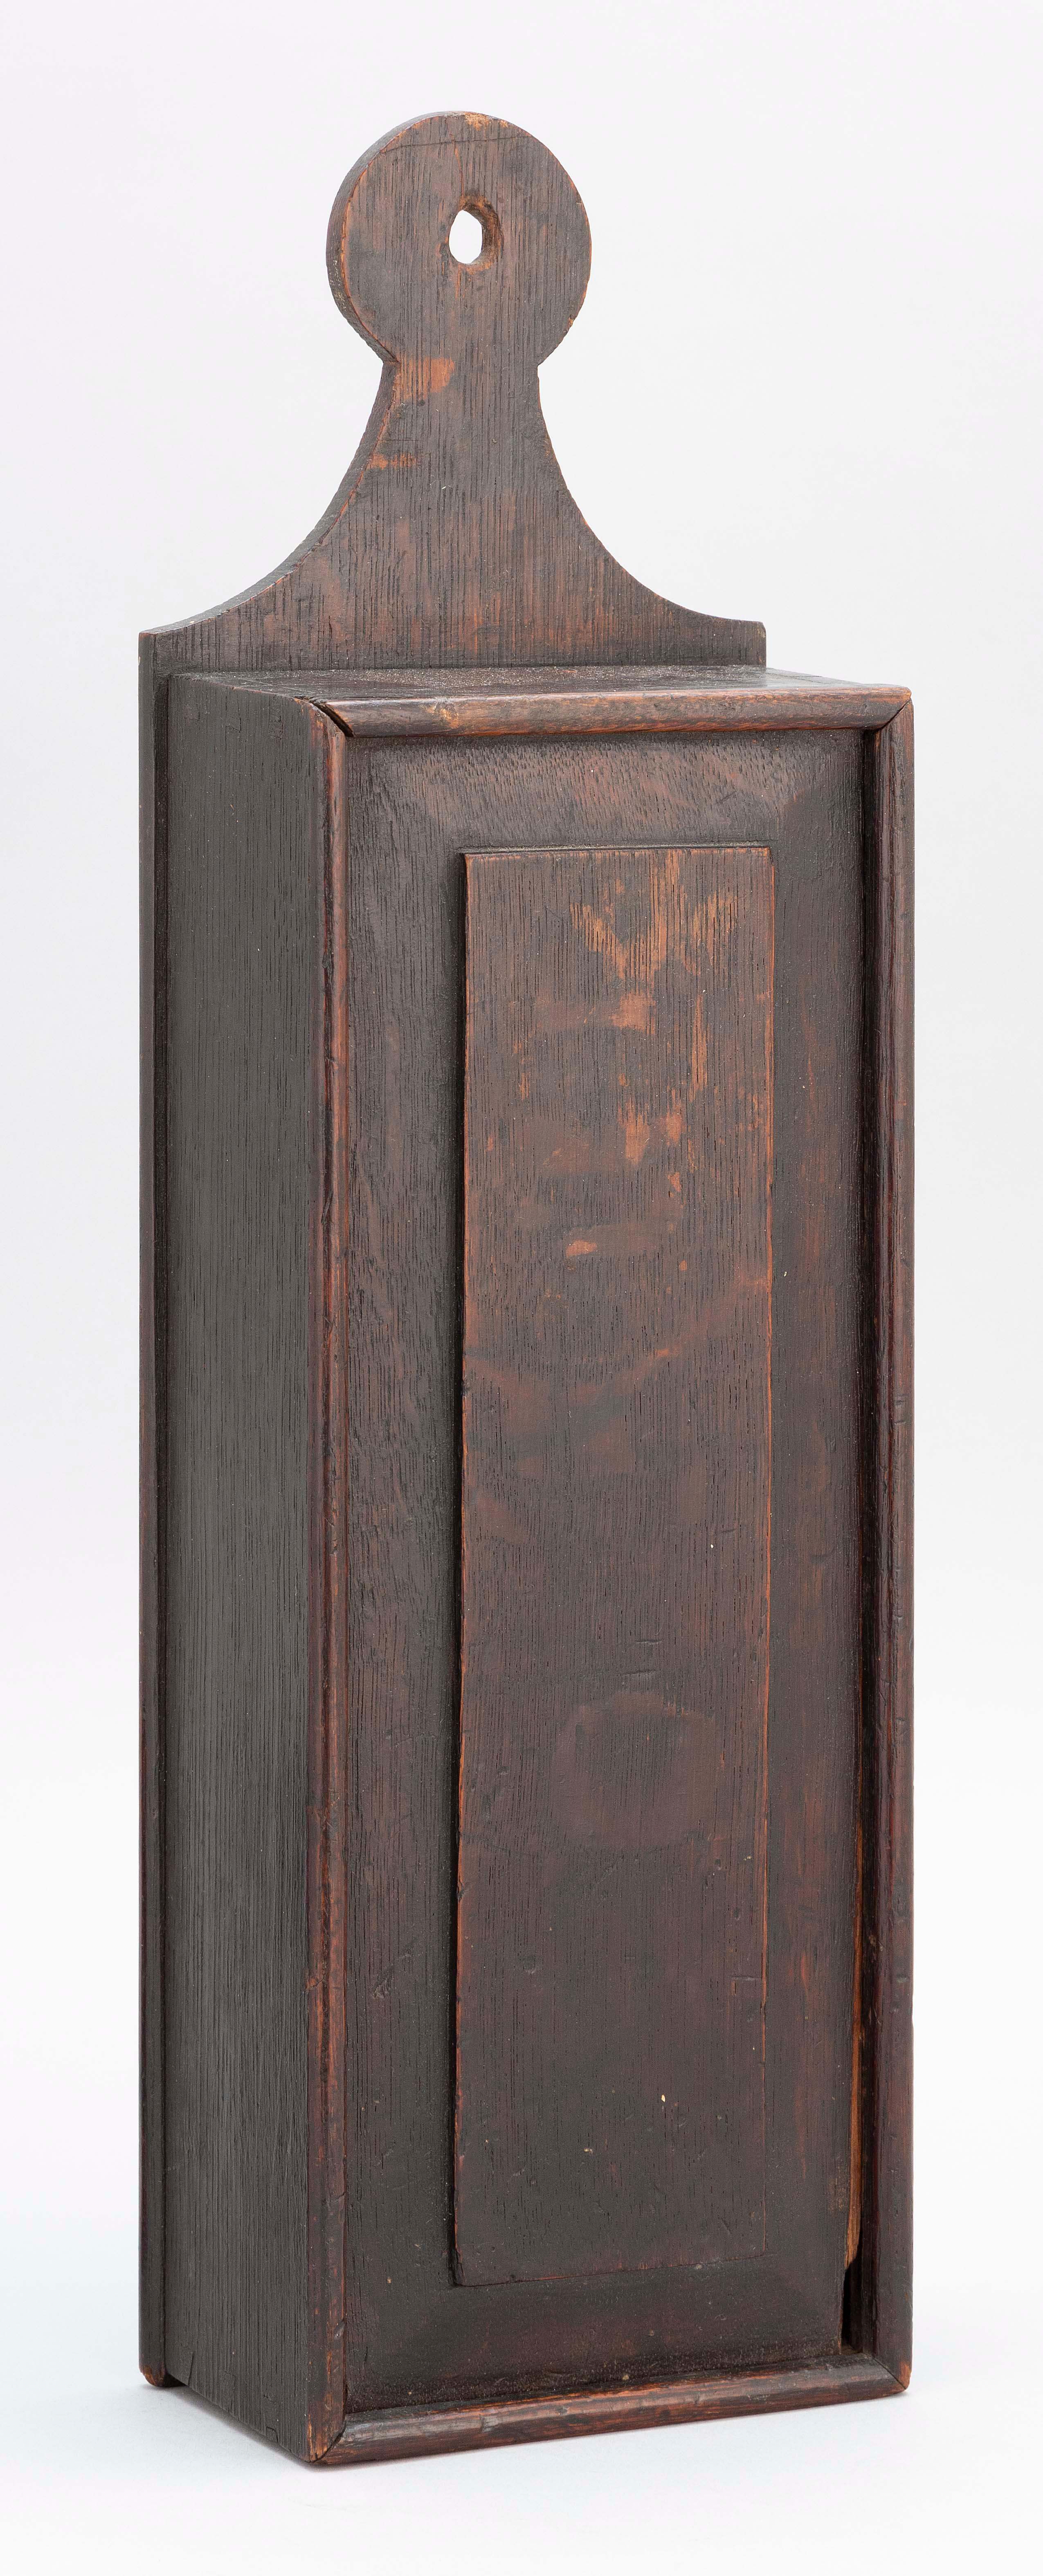 """OAK CANDLE BOX With dovetailed sides, sliding panel front and an old brown finish. Height 19.5"""". Width 6"""". Depth 3.25""""."""